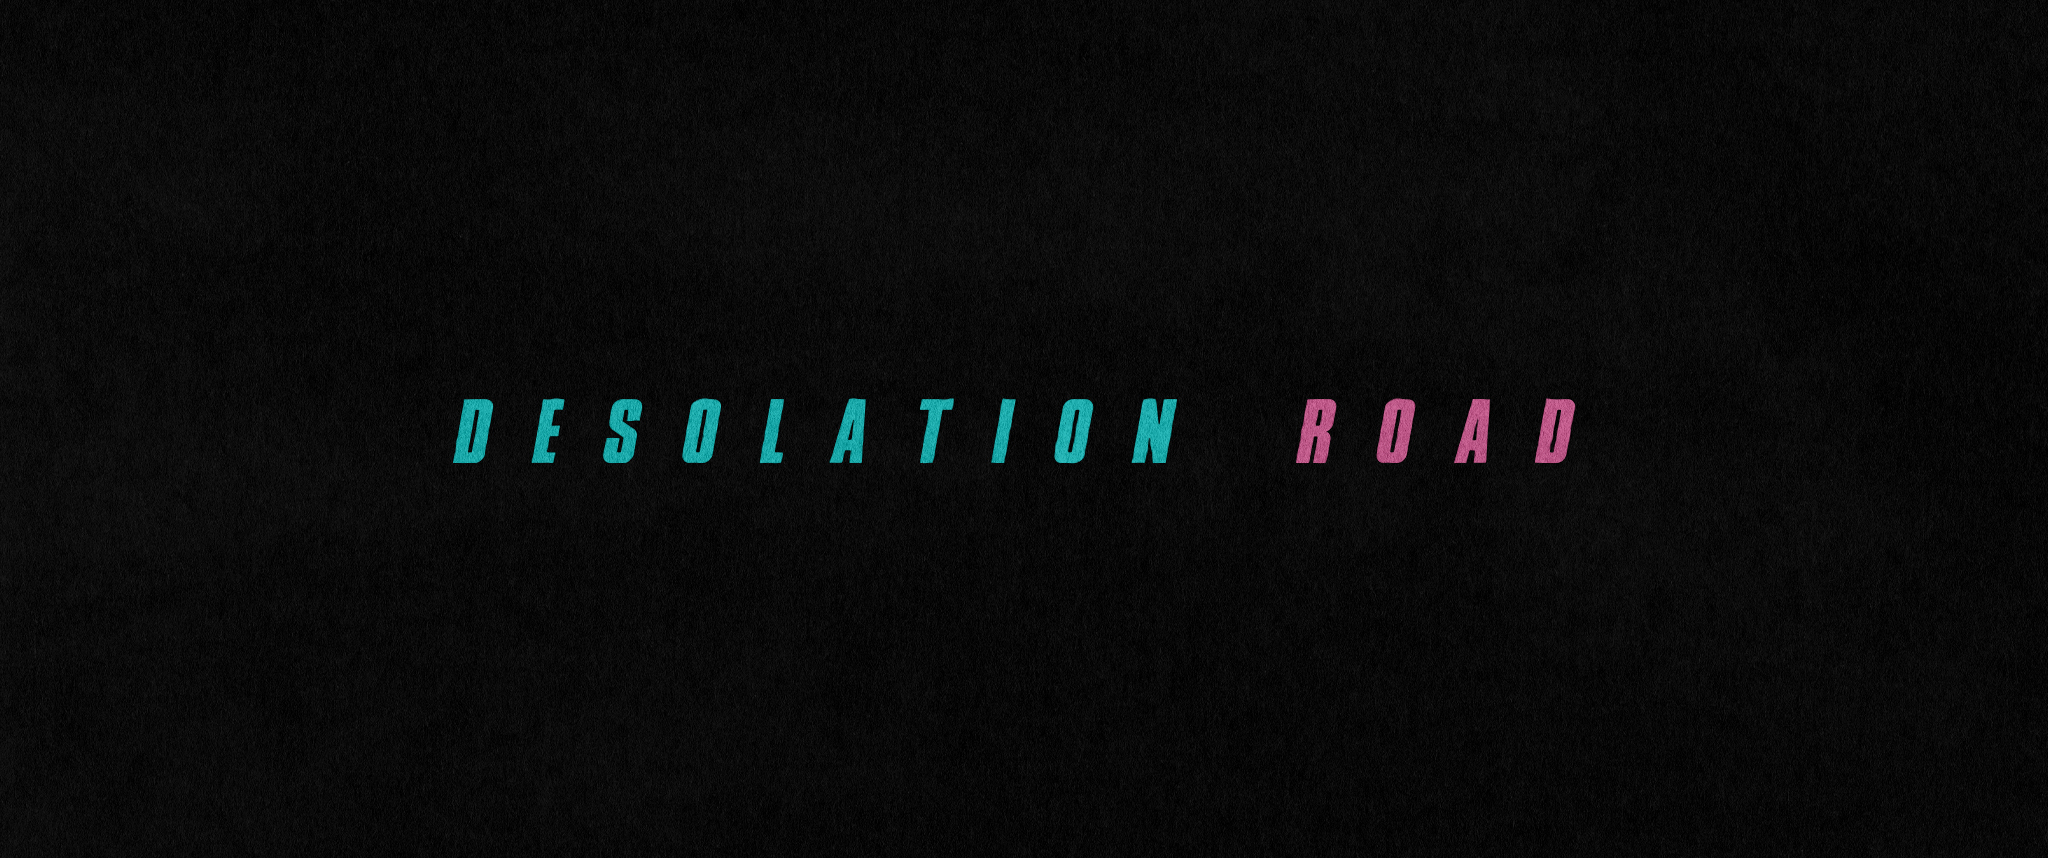 DesolationRoad-Title-A1-010119.jpg